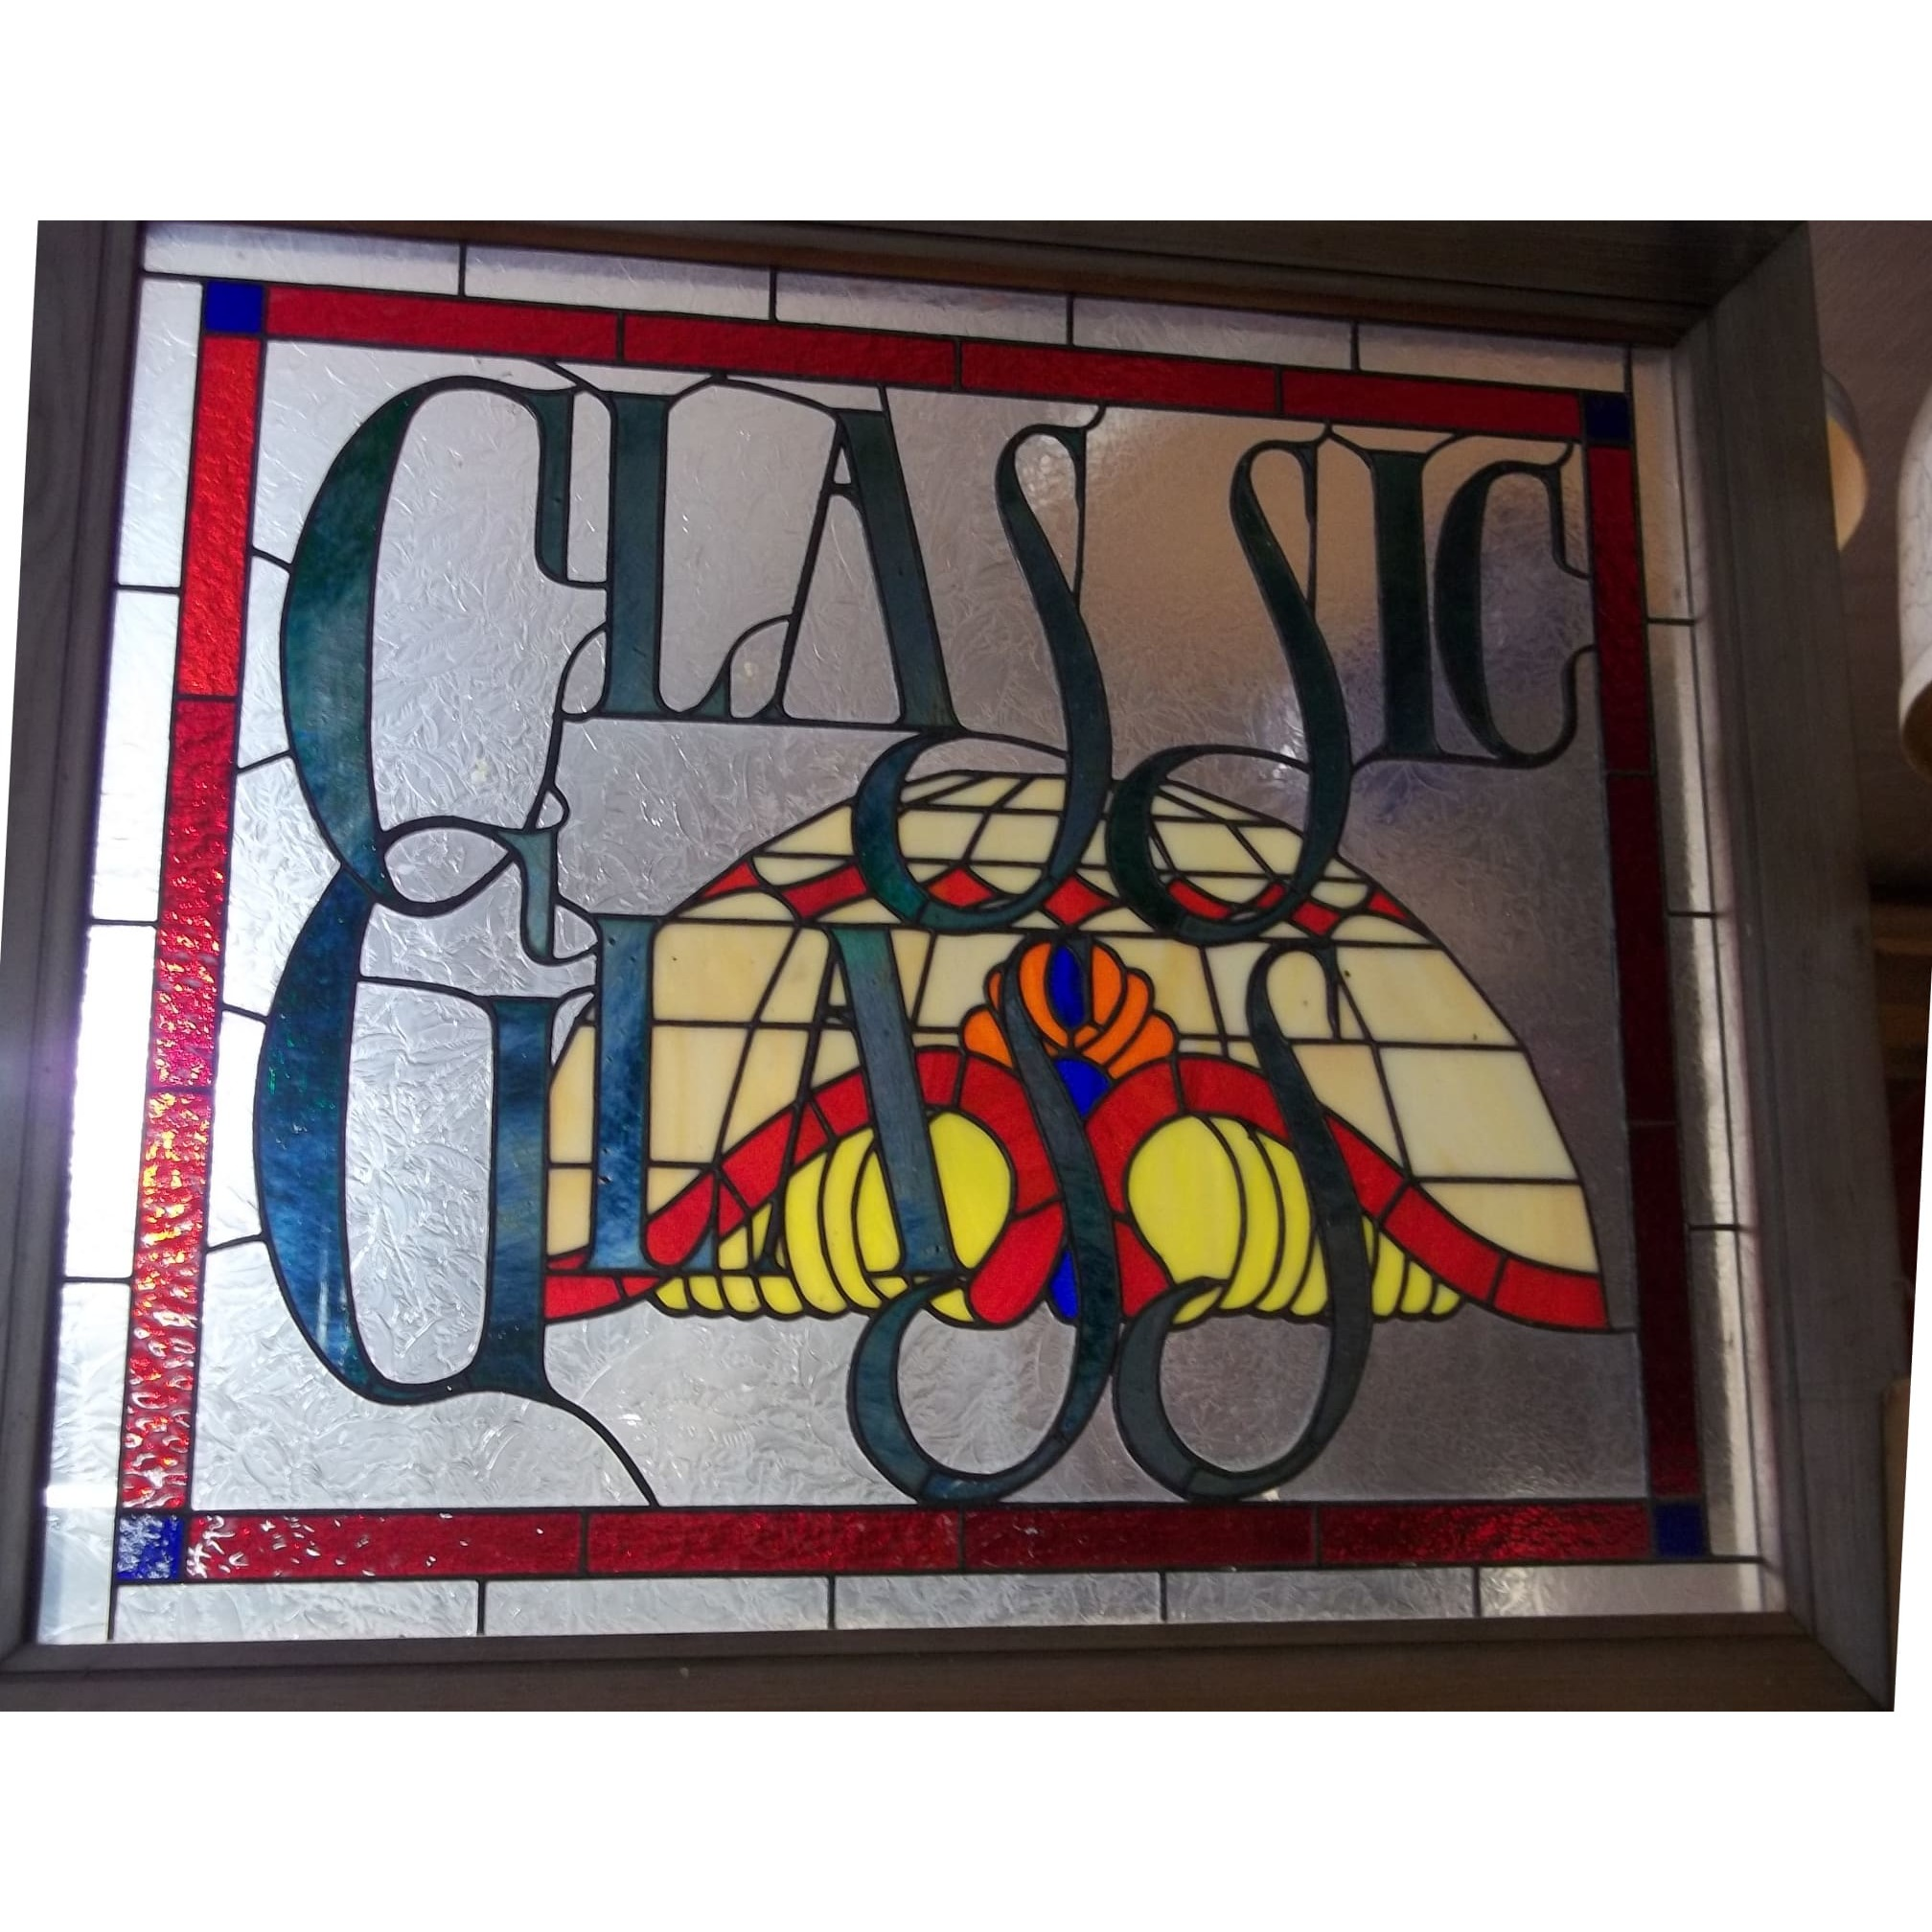 Classic Glass - Leamington Spa, Warwickshire CV31 2NF - 07546 713972 | ShowMeLocal.com